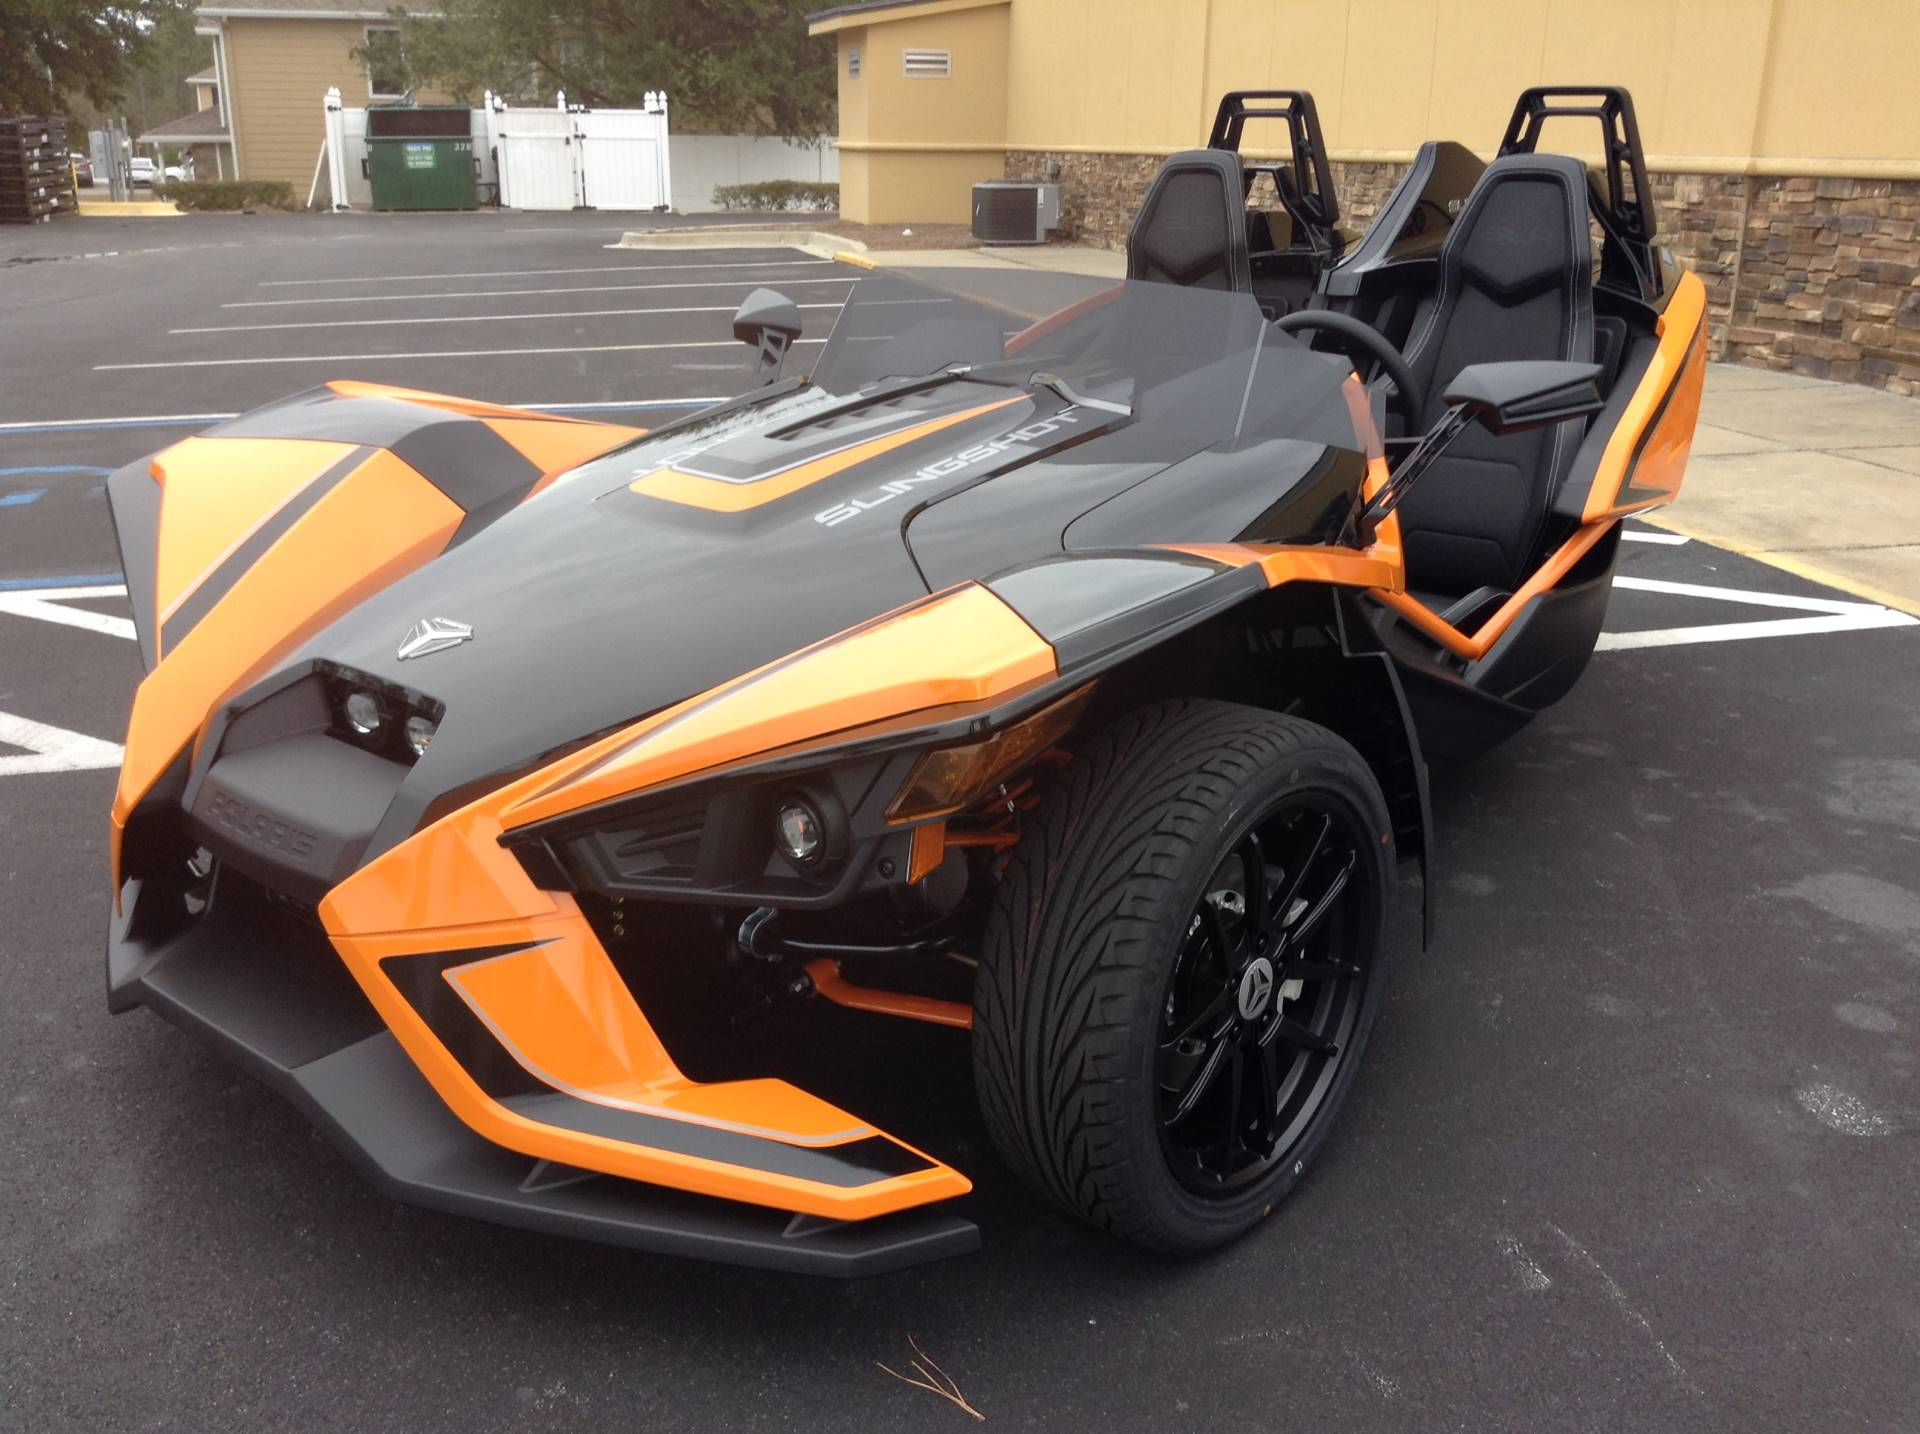 2019 Polaris Slingshot SLR in Panama City Beach, Florida - Photo 7